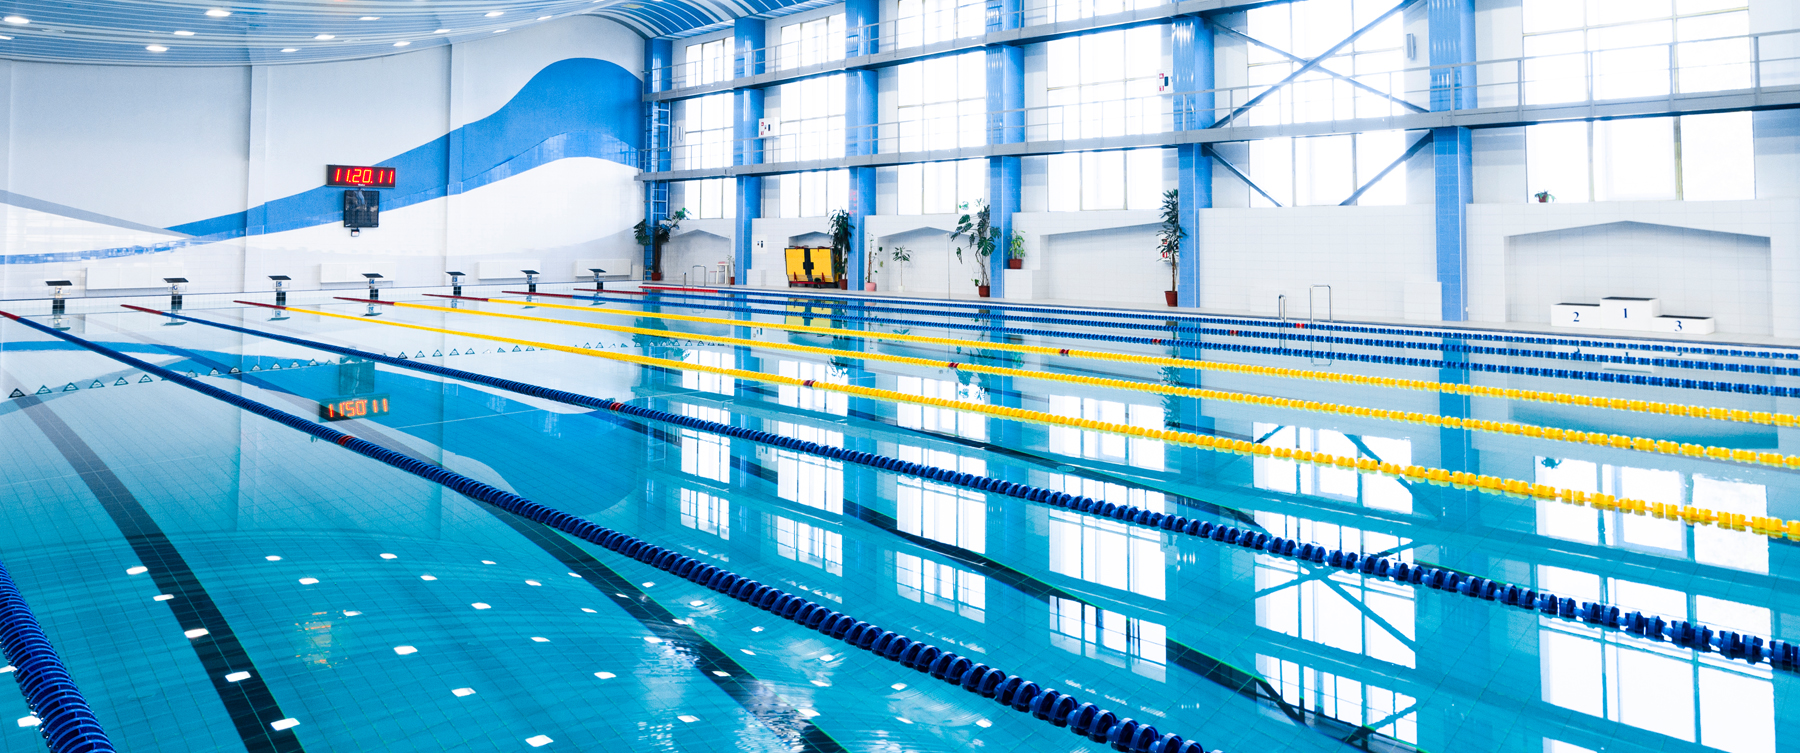 Information about Pool Safety Equipment and Training Equipment from H2O Innovations.